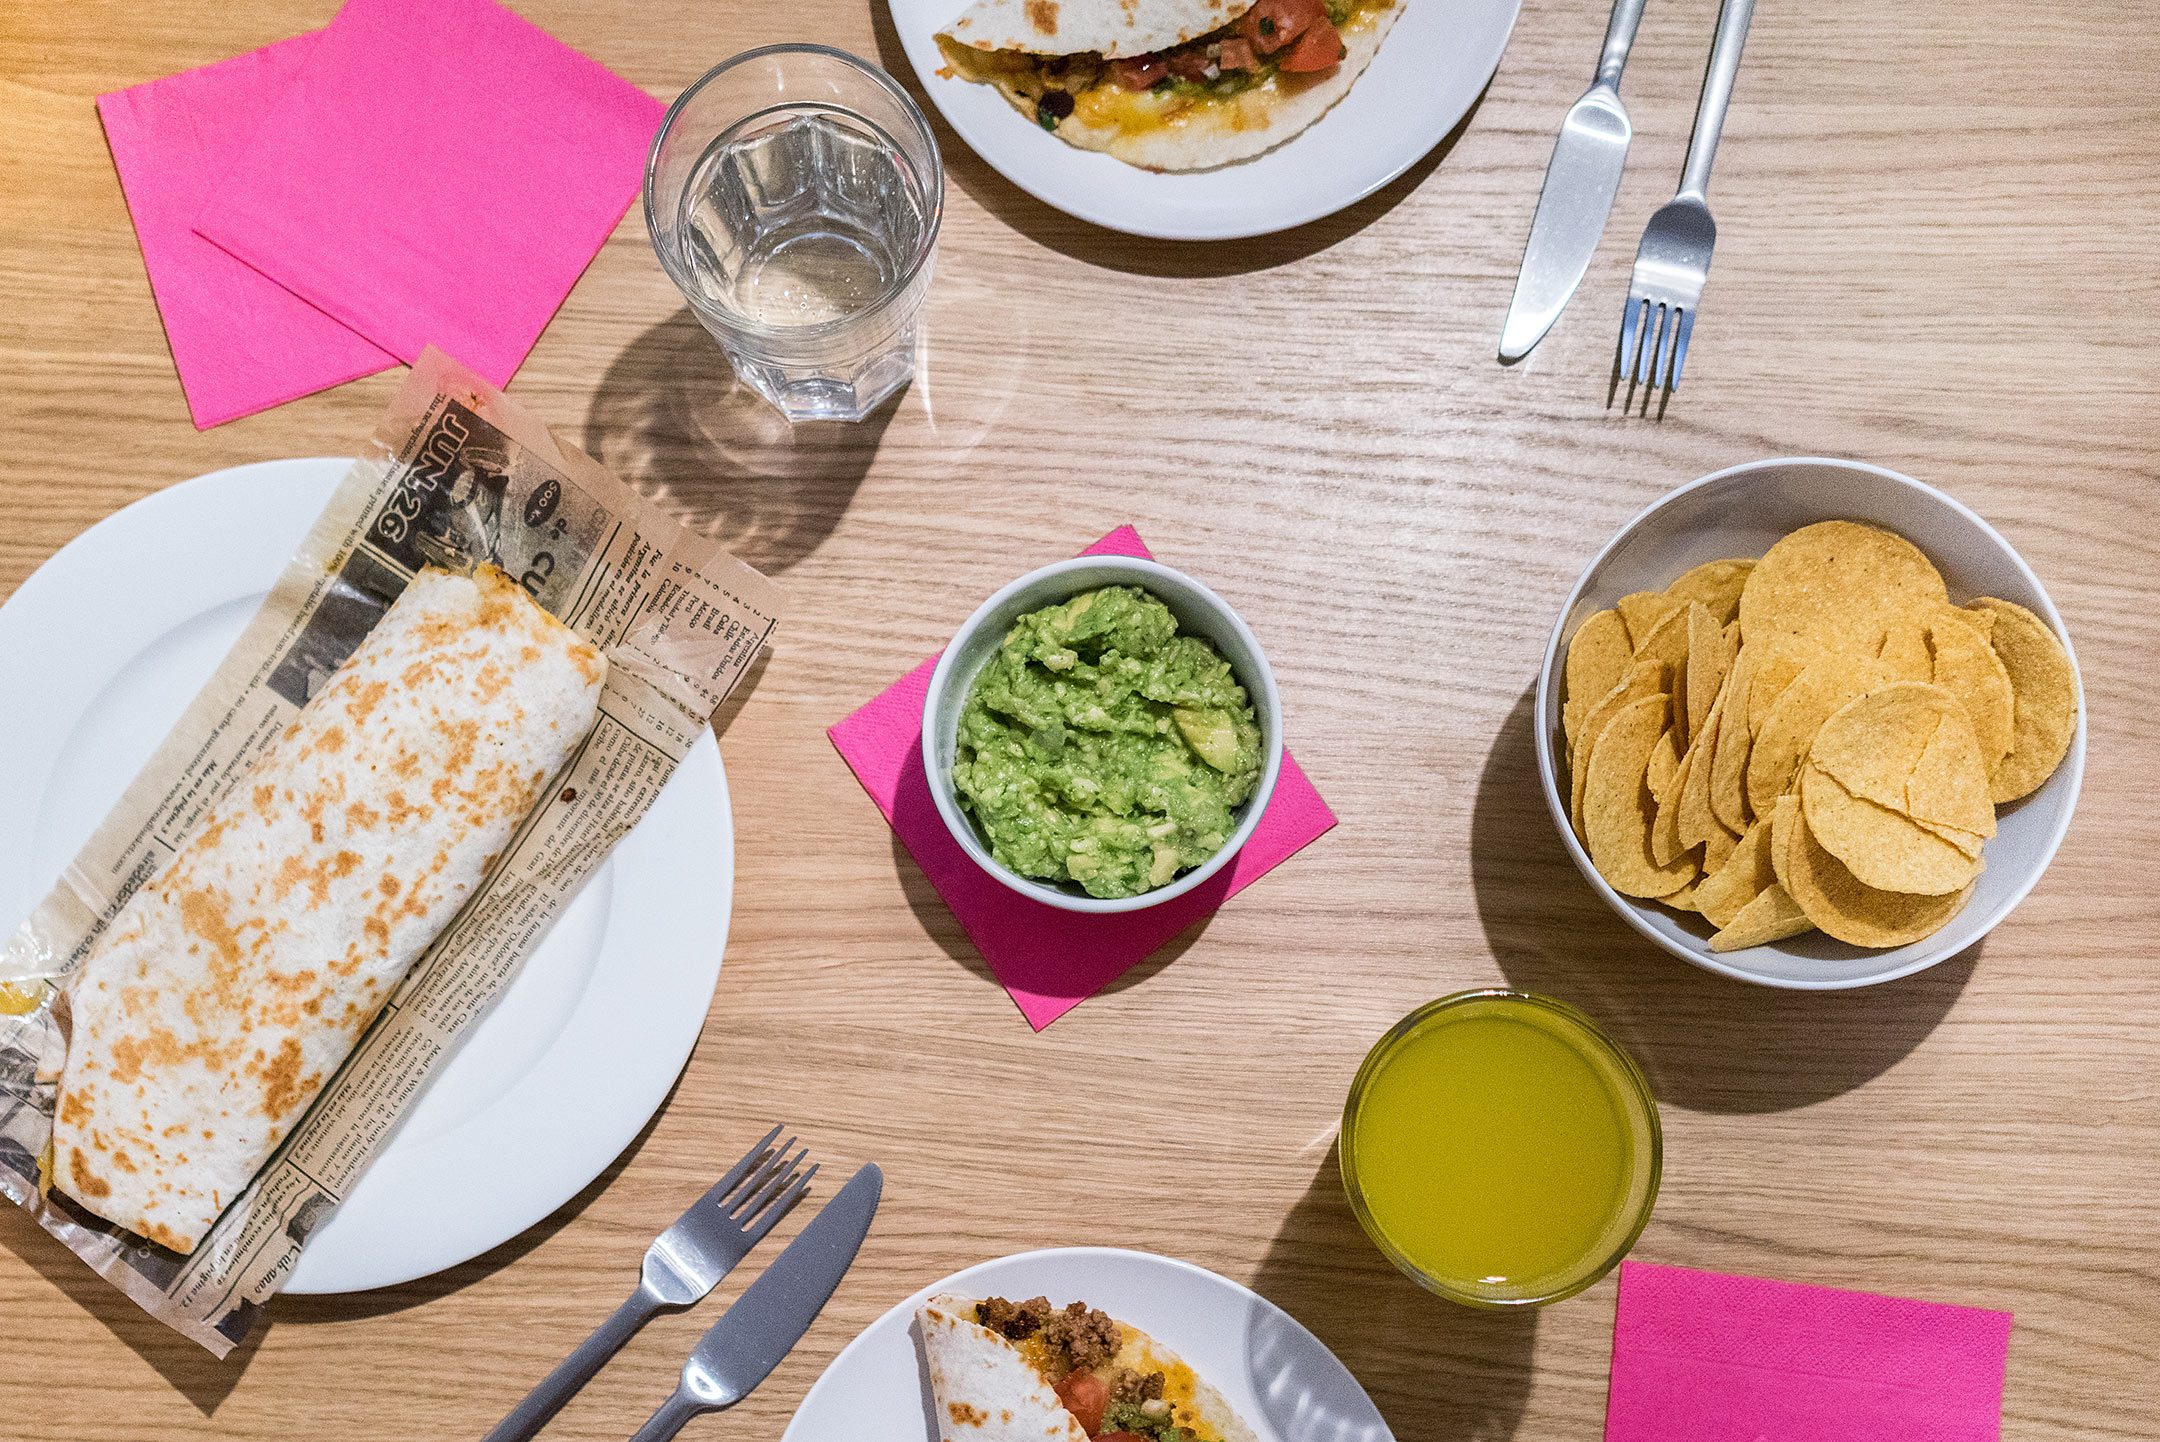 Casita Mexicana Düsseldorf Foodora Sunnyinga Lifestyle Blog